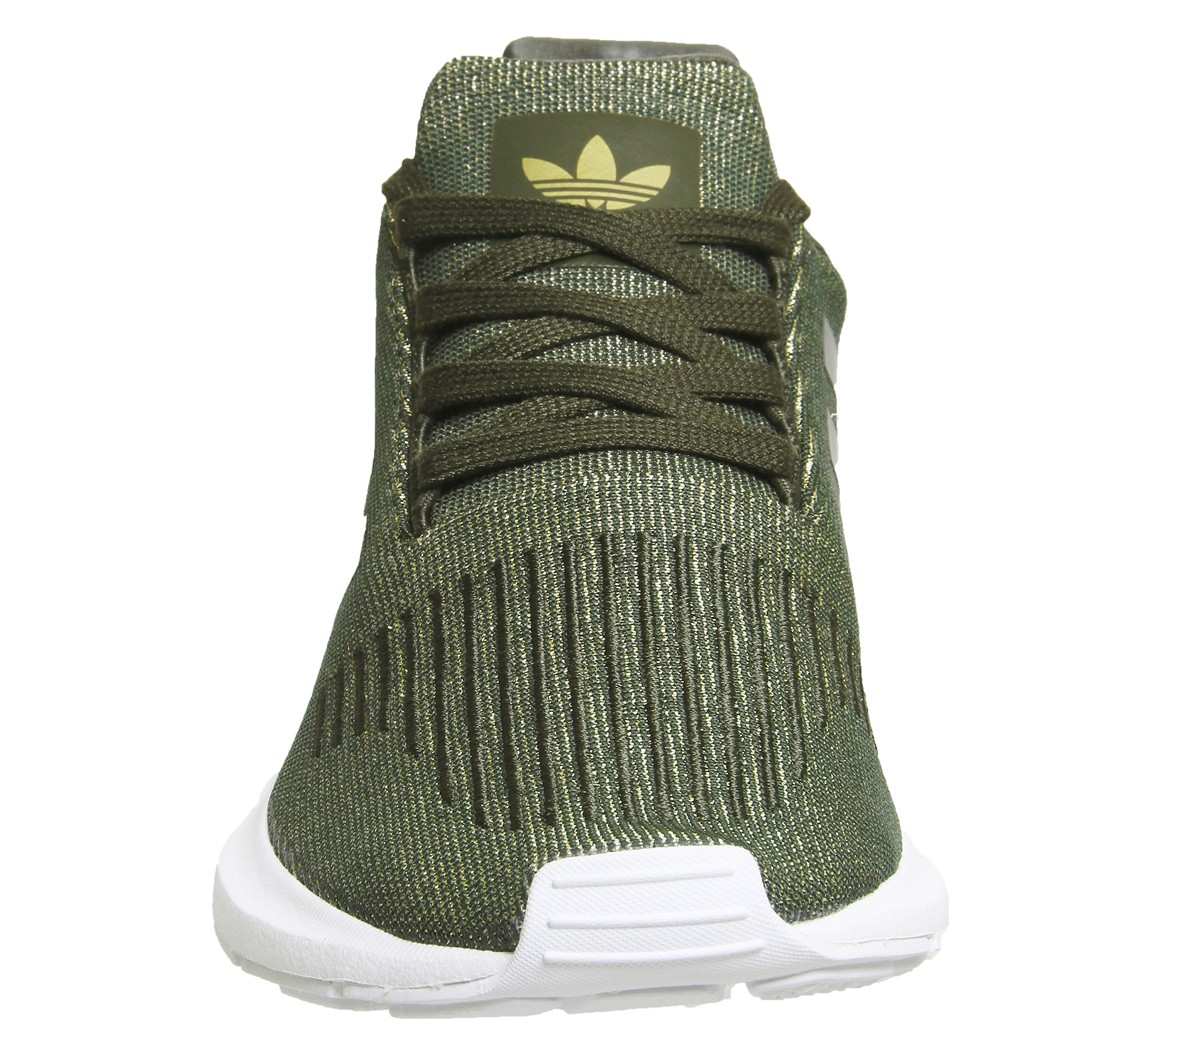 3609bcbe73649 Image is loading Womens-Adidas-Swift-Run-NIGHT-CARGO-GLITTER-Trainers-